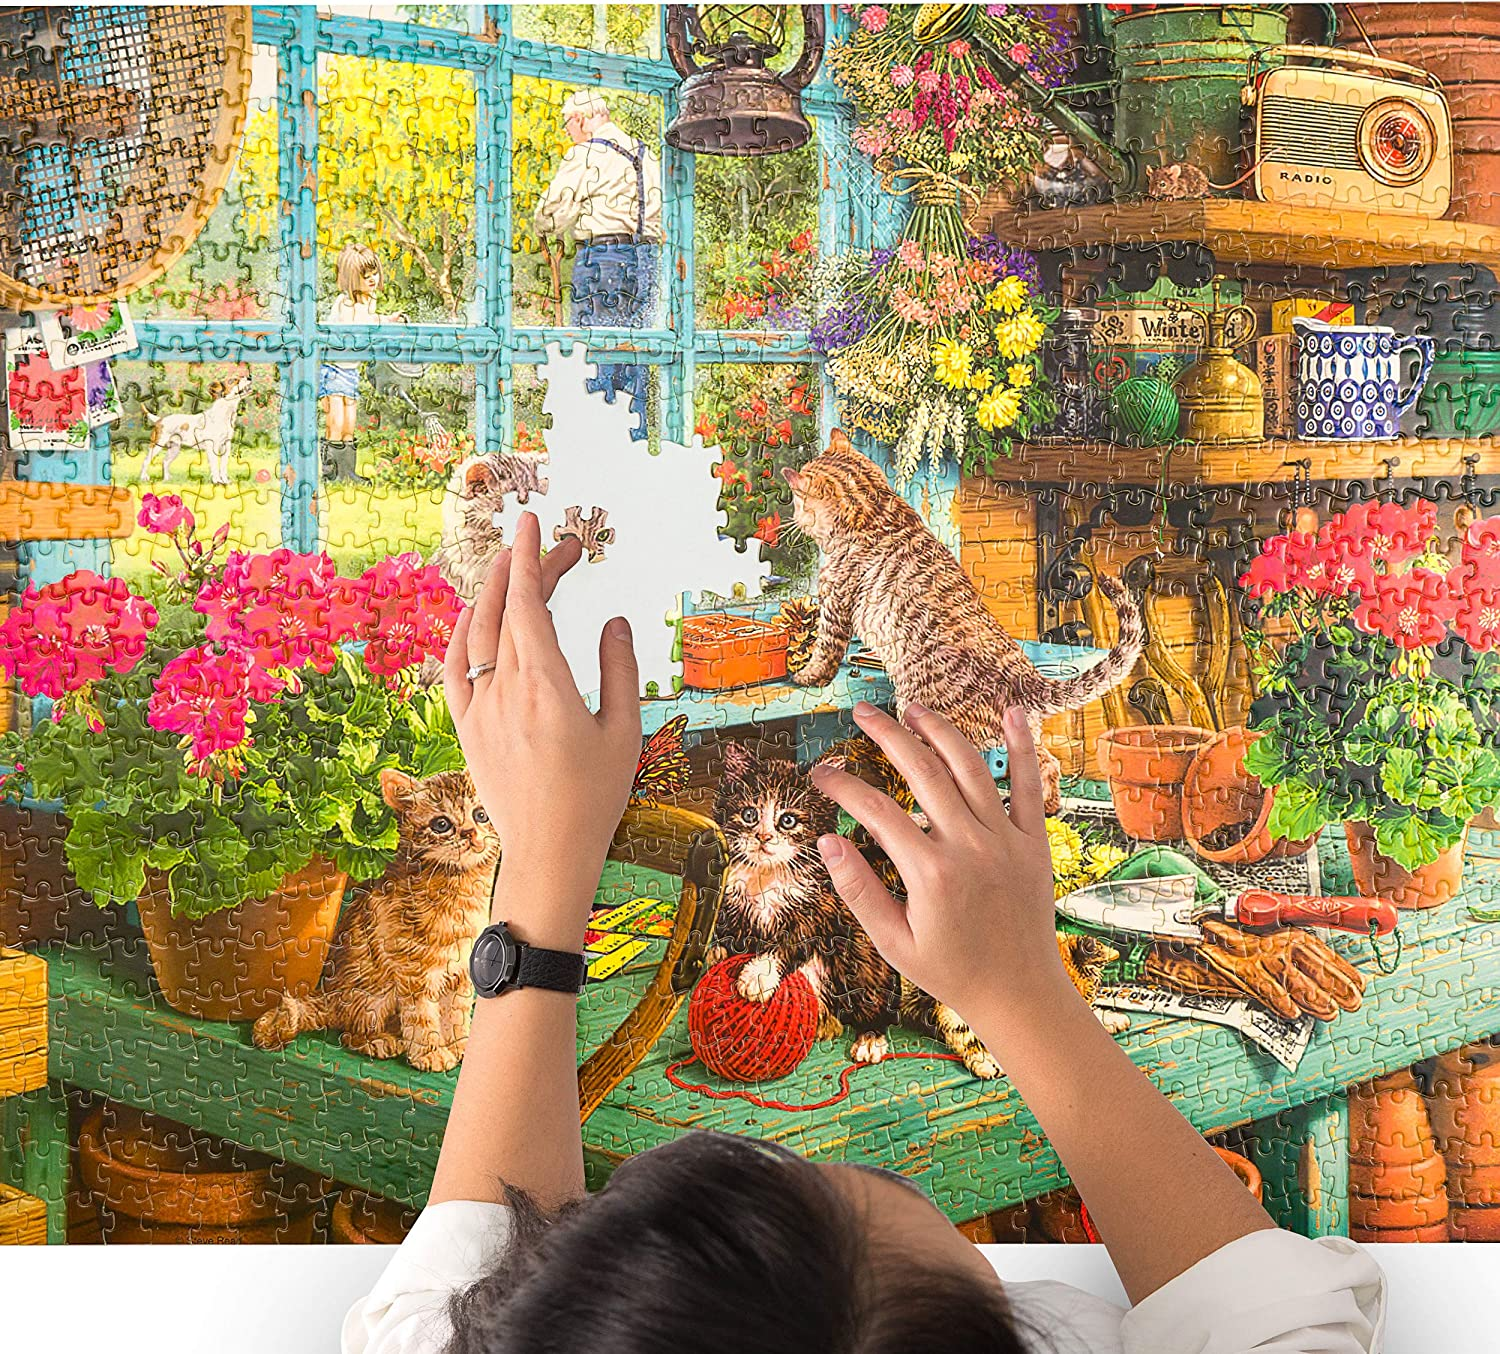 Jigsaw Puzzles for Adults 1000 Piece Stress Reliever Art Puzzle with Vivid Colors for Family Bonding Challenging Afternoon Cat Adult Puzzles